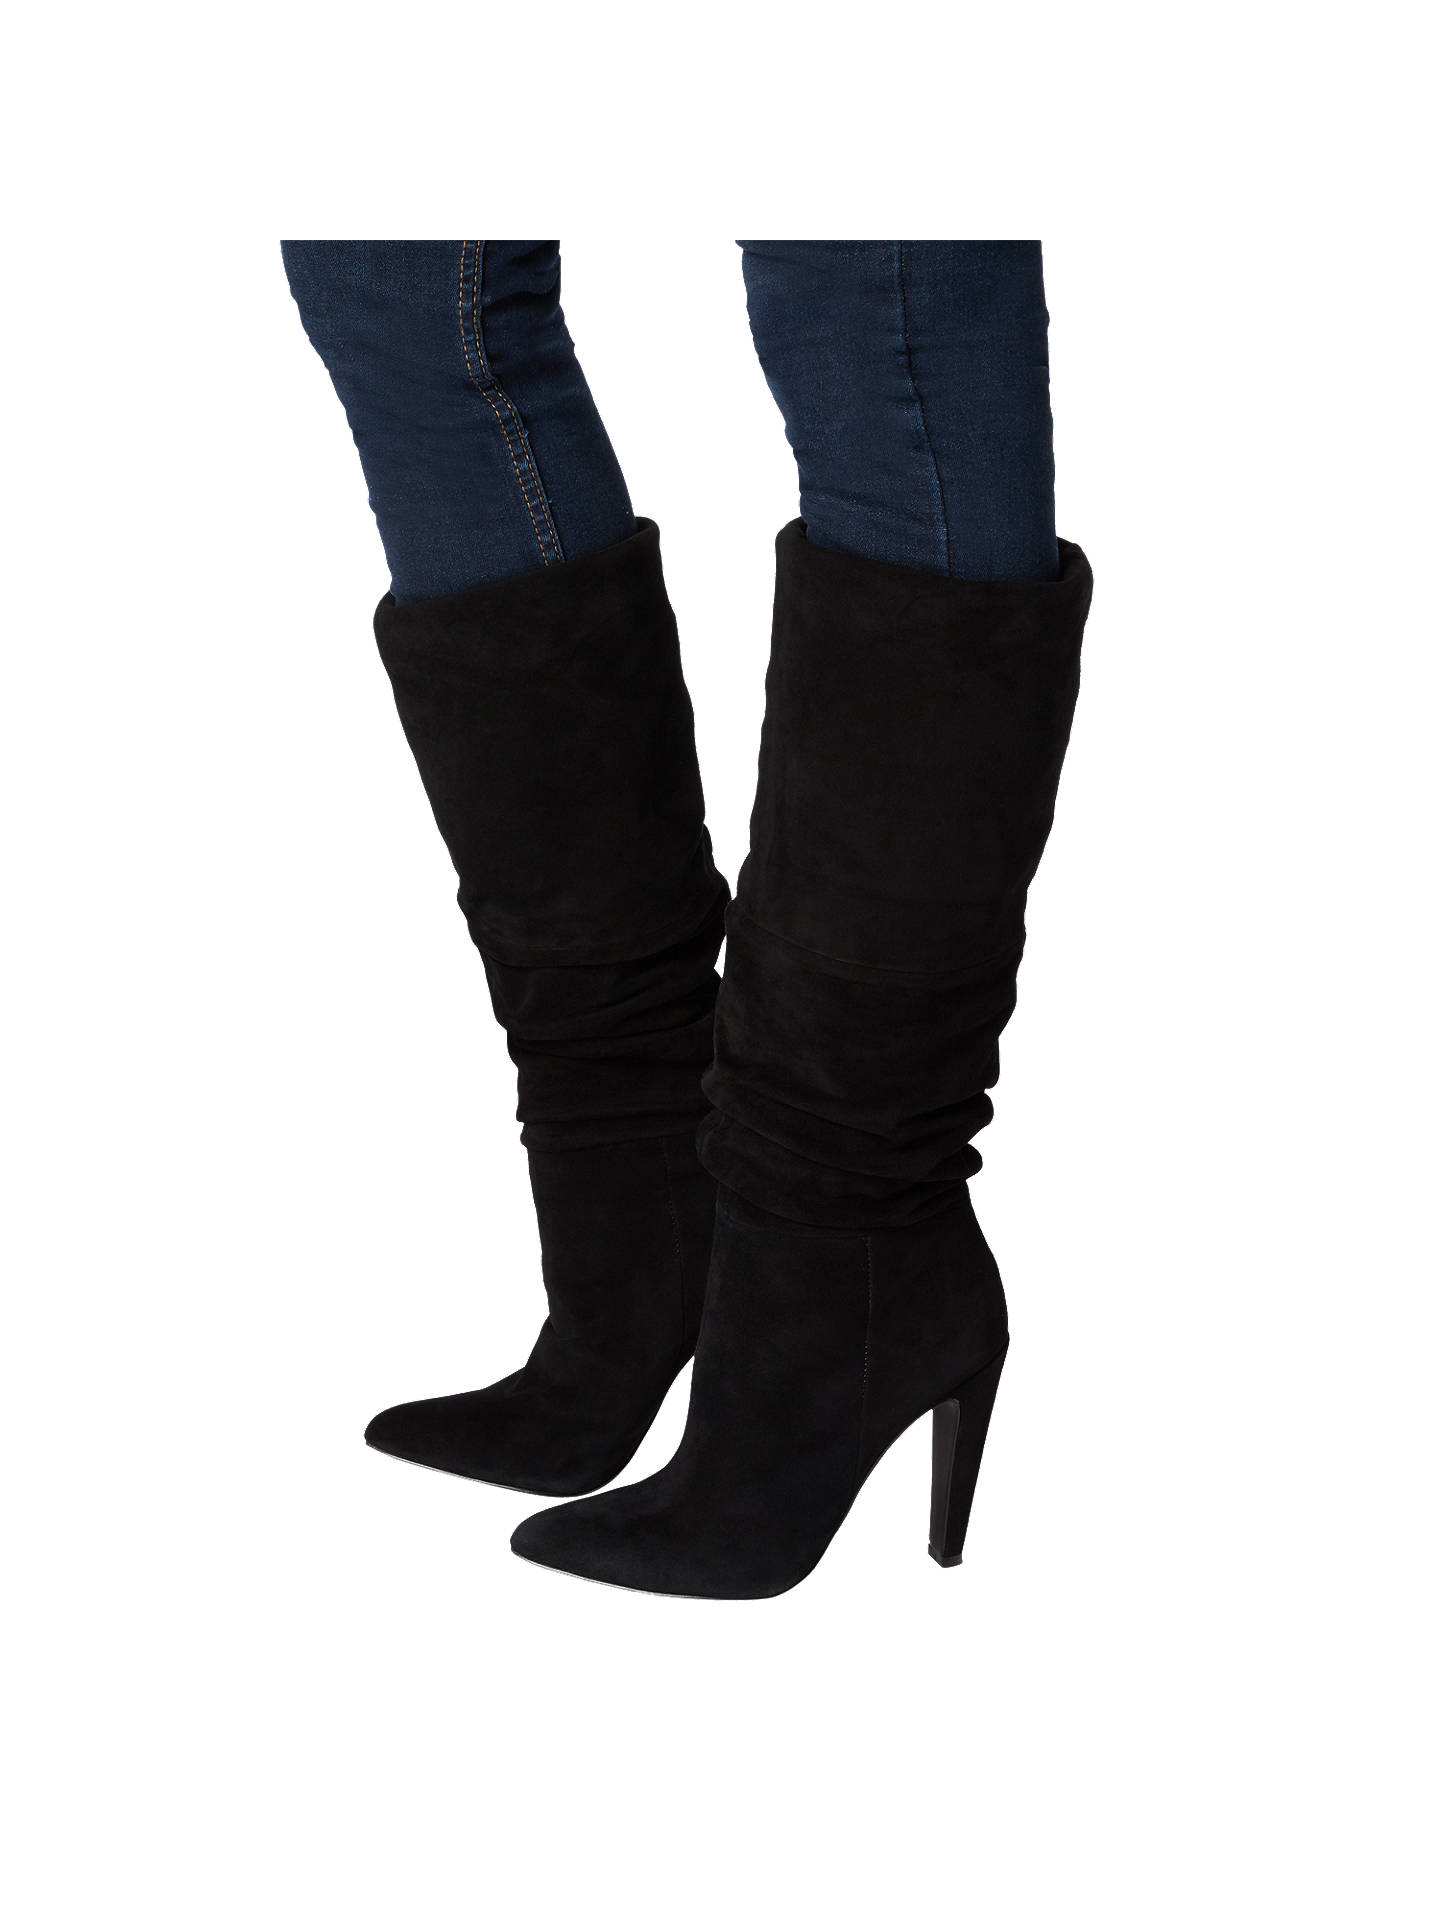 851d13478c86 ... Buy Steve Madden Carrie Ruched Knee High Boots